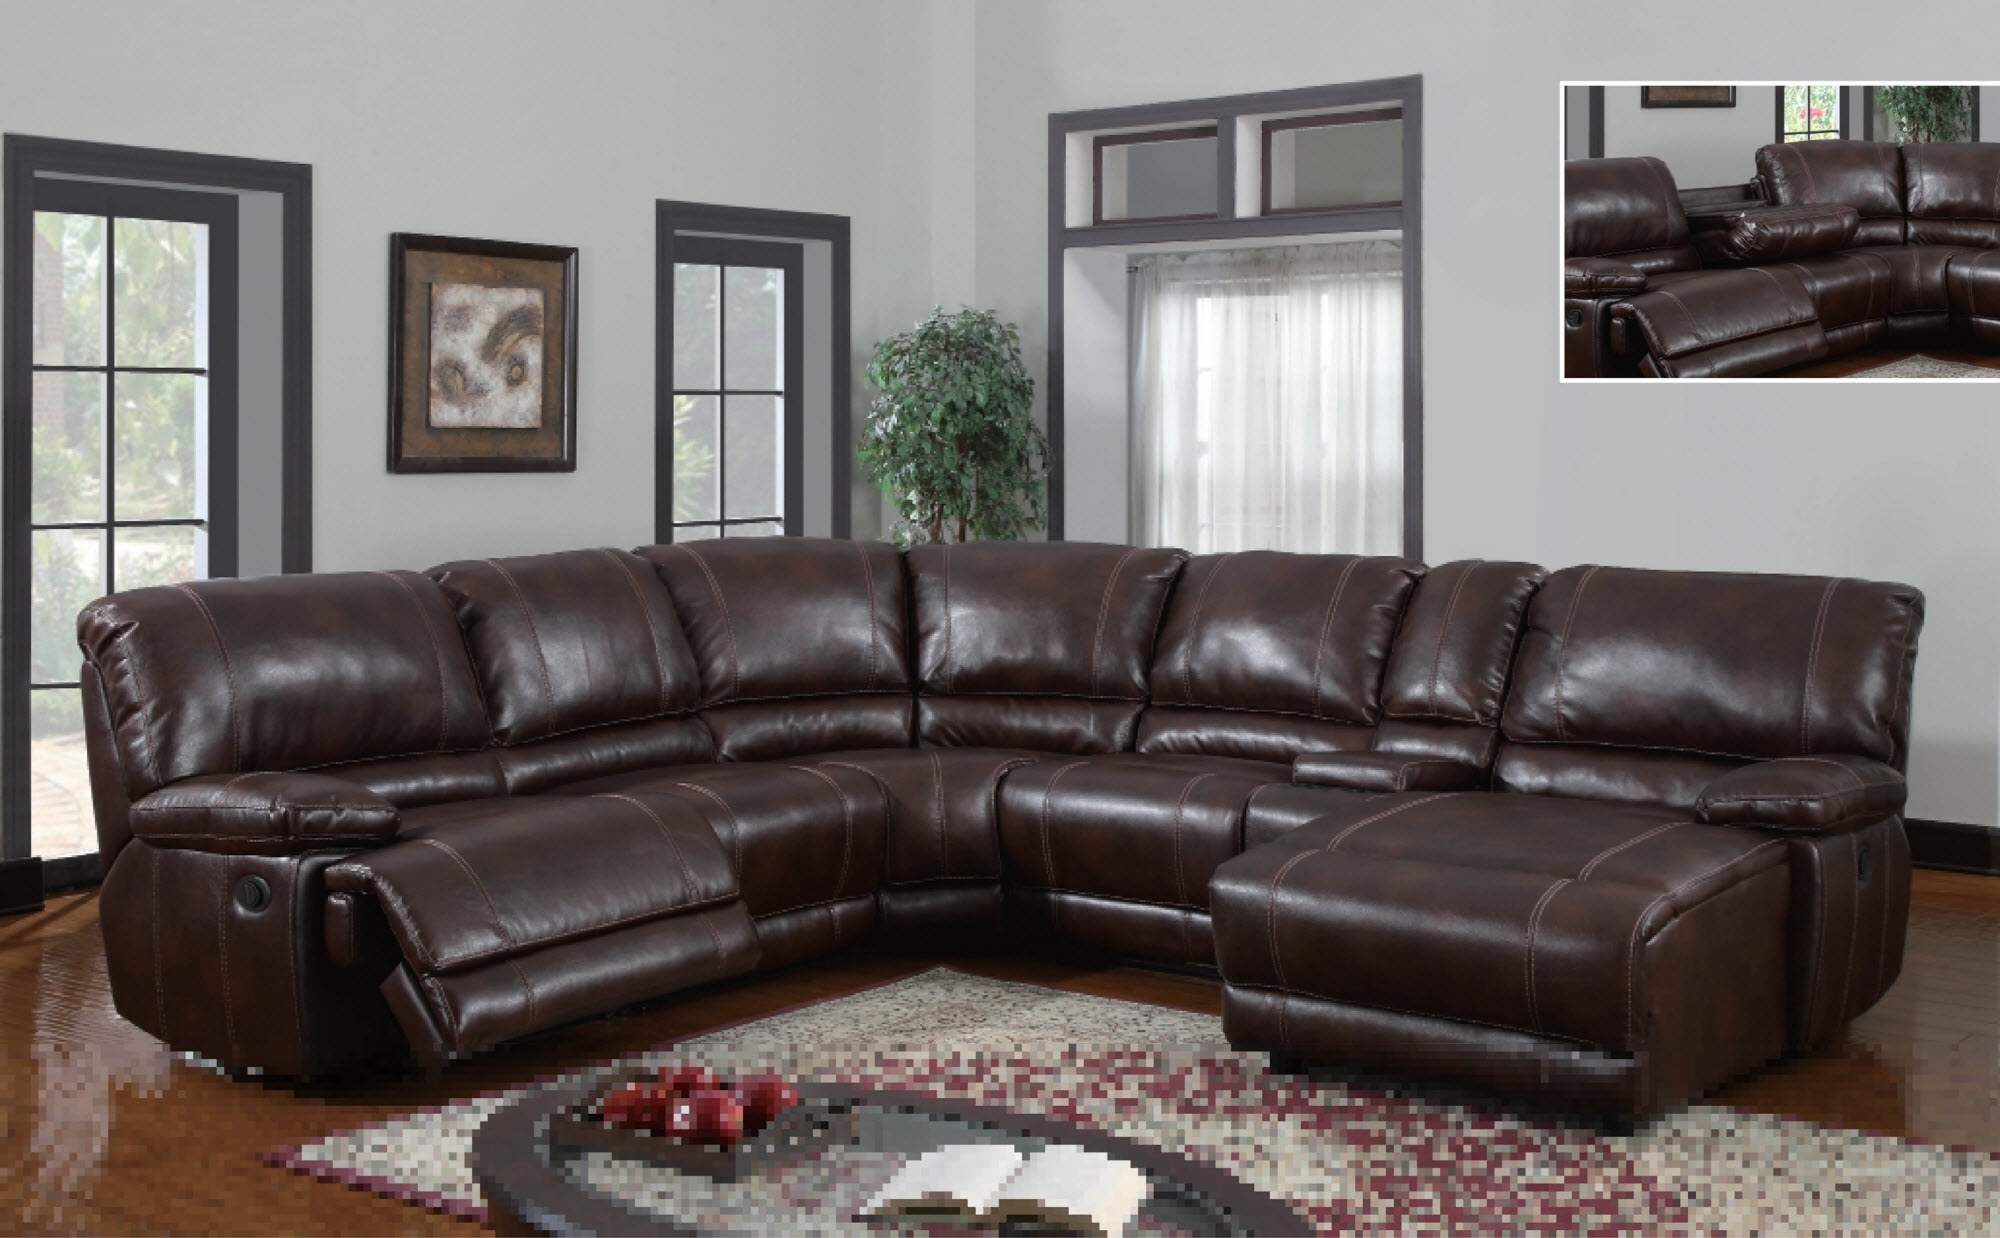 Sectional Sofa : Small L Couch Chicago Sectional Commercial in Sectional Sofas At Chicago (Image 11 of 15)